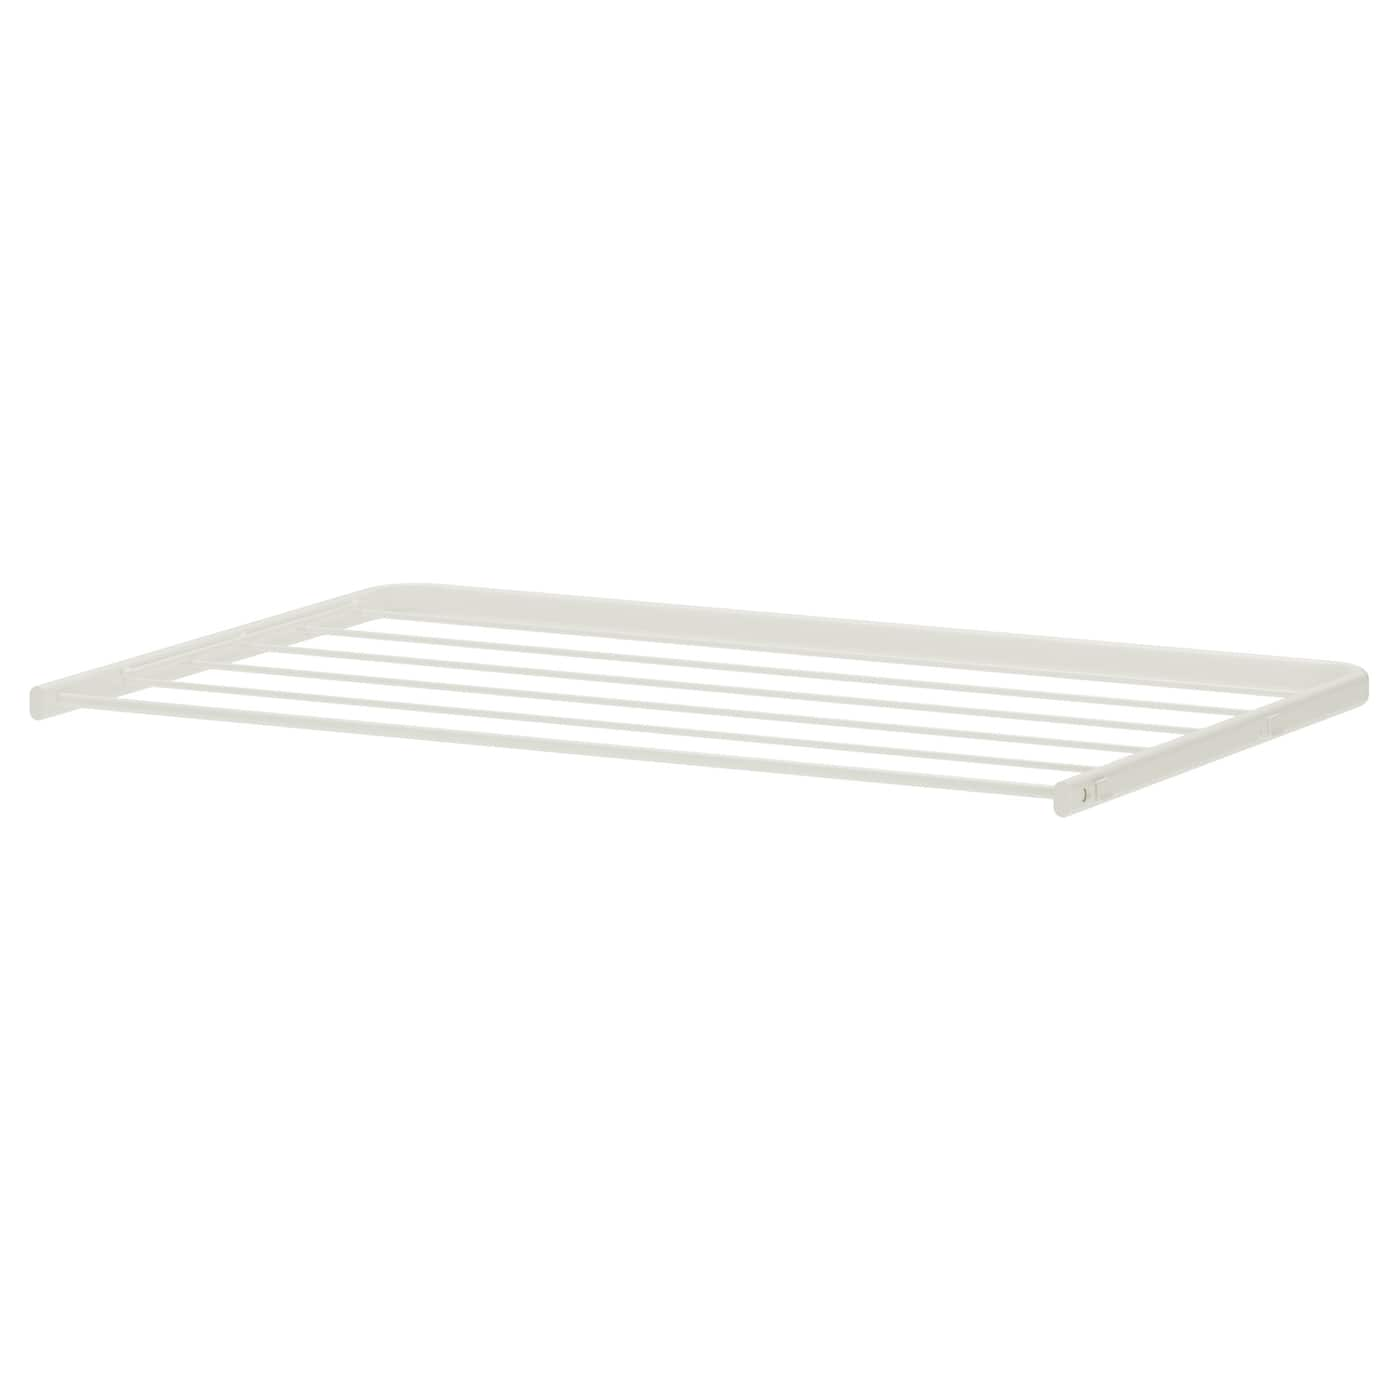 IKEA ALGOT drying rack Can also be used in bathrooms and other damp areas indoors.